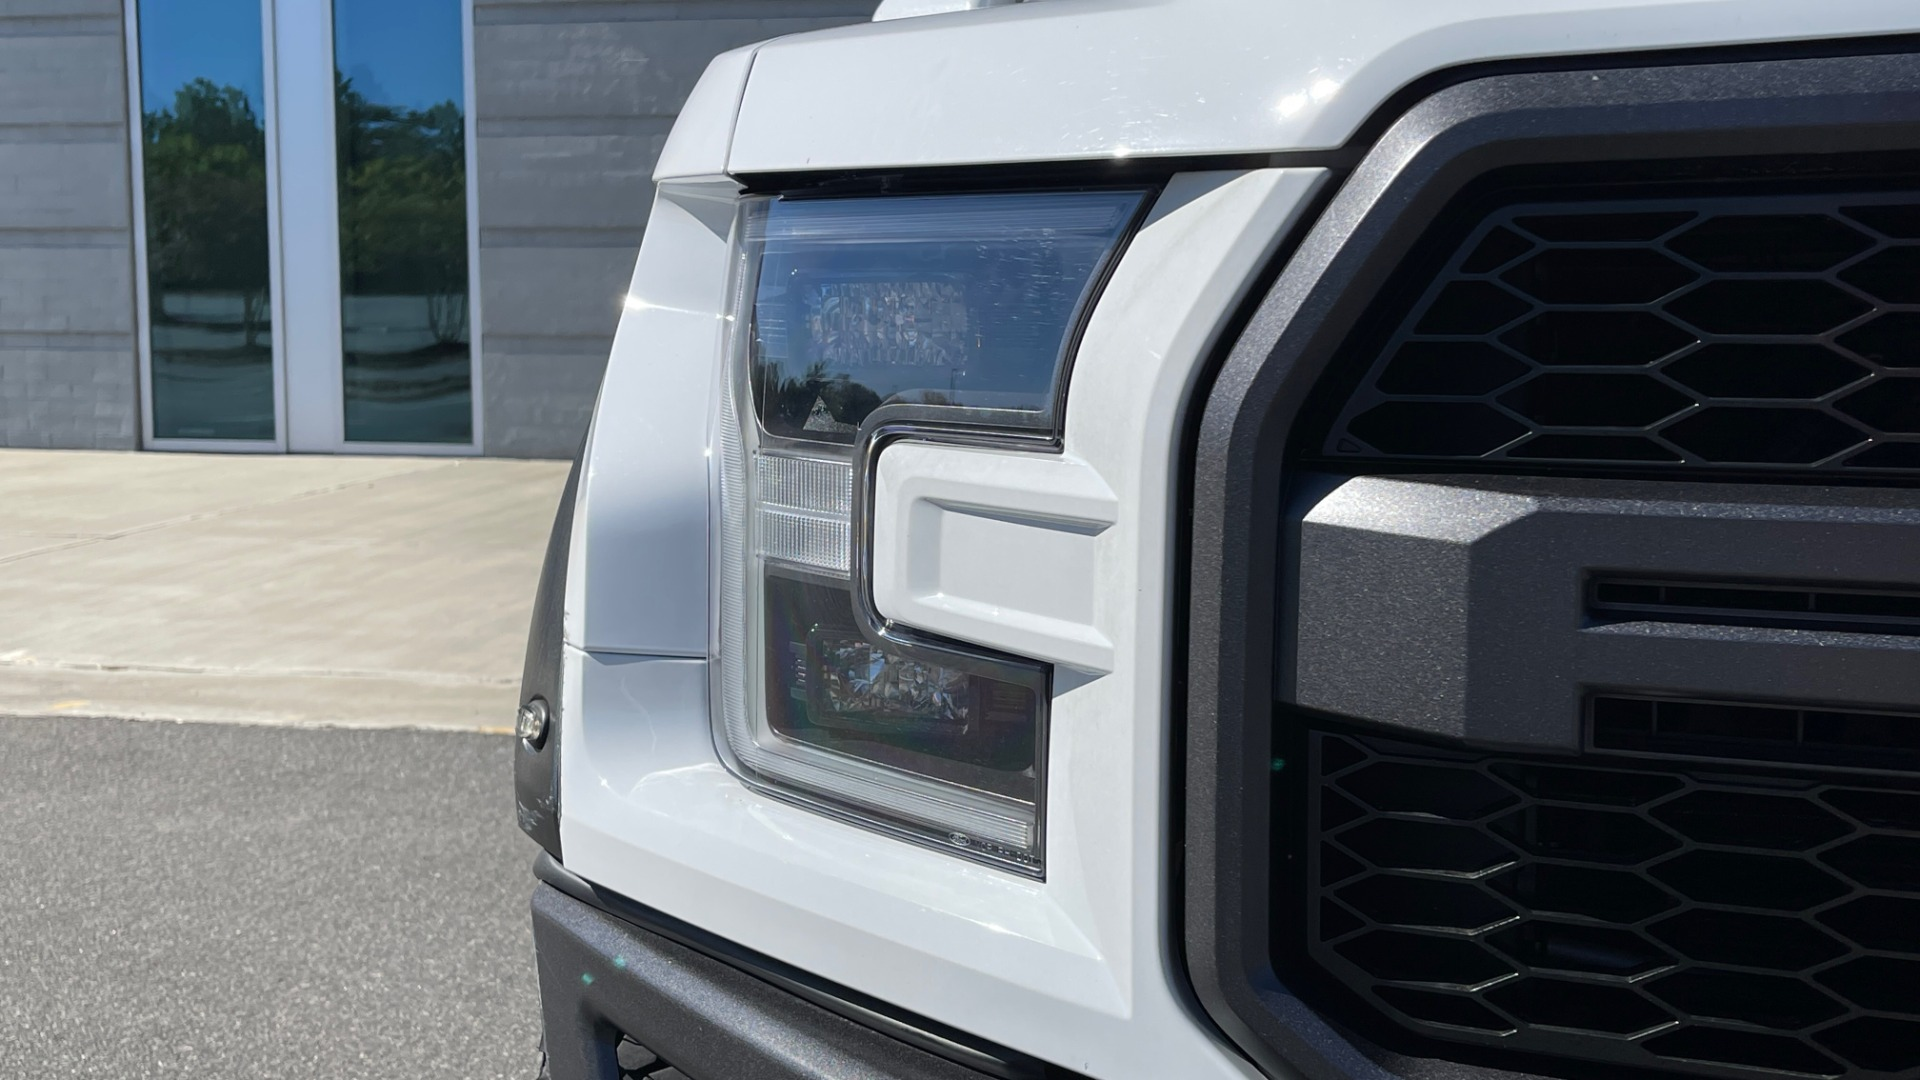 Used 2019 Ford F-150 RAPTOR 4X4 SUPERCREW / NAV / BLIS / B&O SND / REMOTE START / REARVIEW for sale $65,999 at Formula Imports in Charlotte NC 28227 12